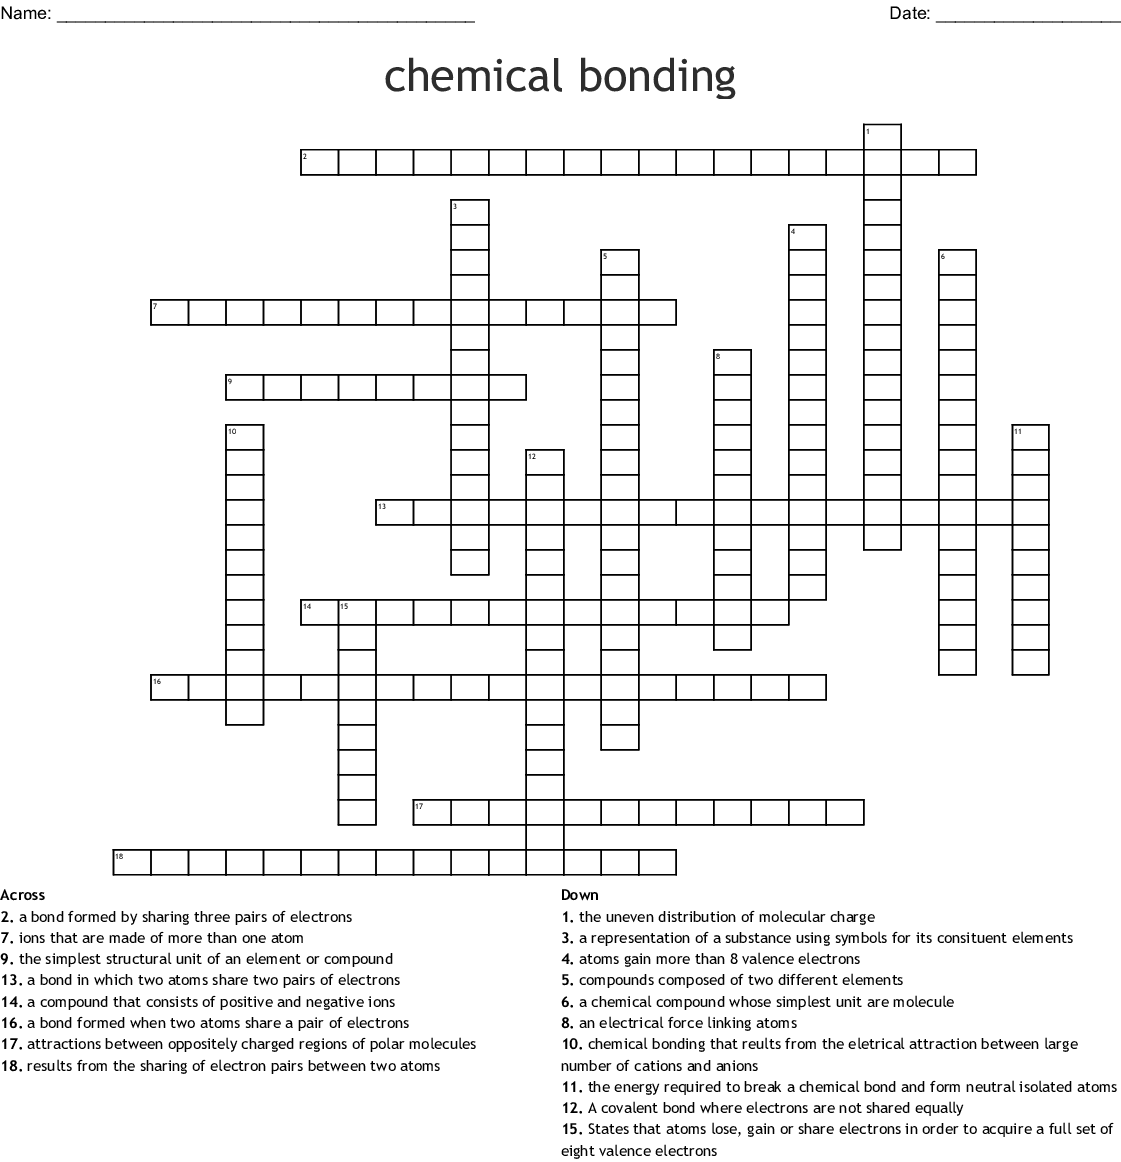 Worksheet Chemical Bonding Ionic And Covalent